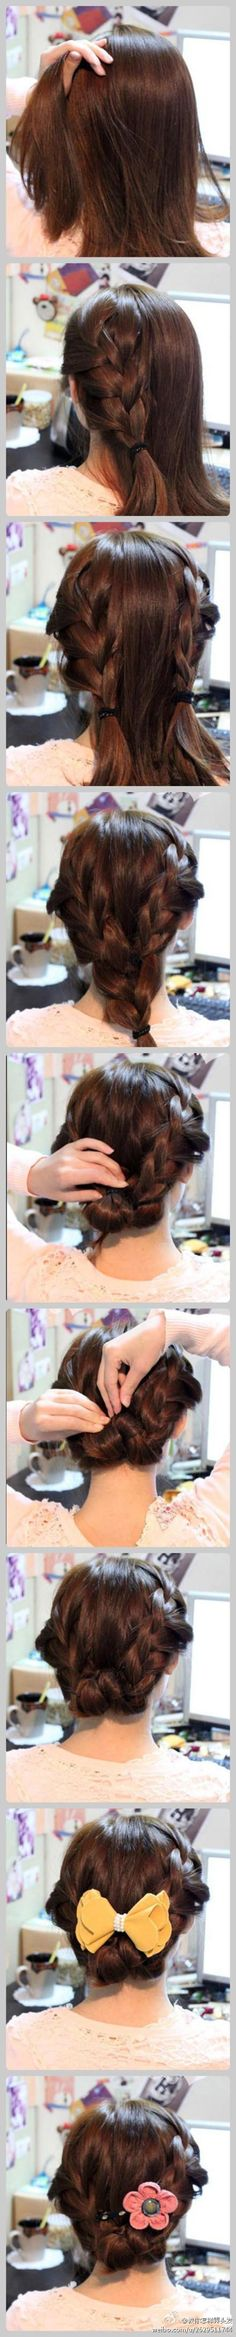 French braid up-do. My hair might be long enough for this. Like the hair color too